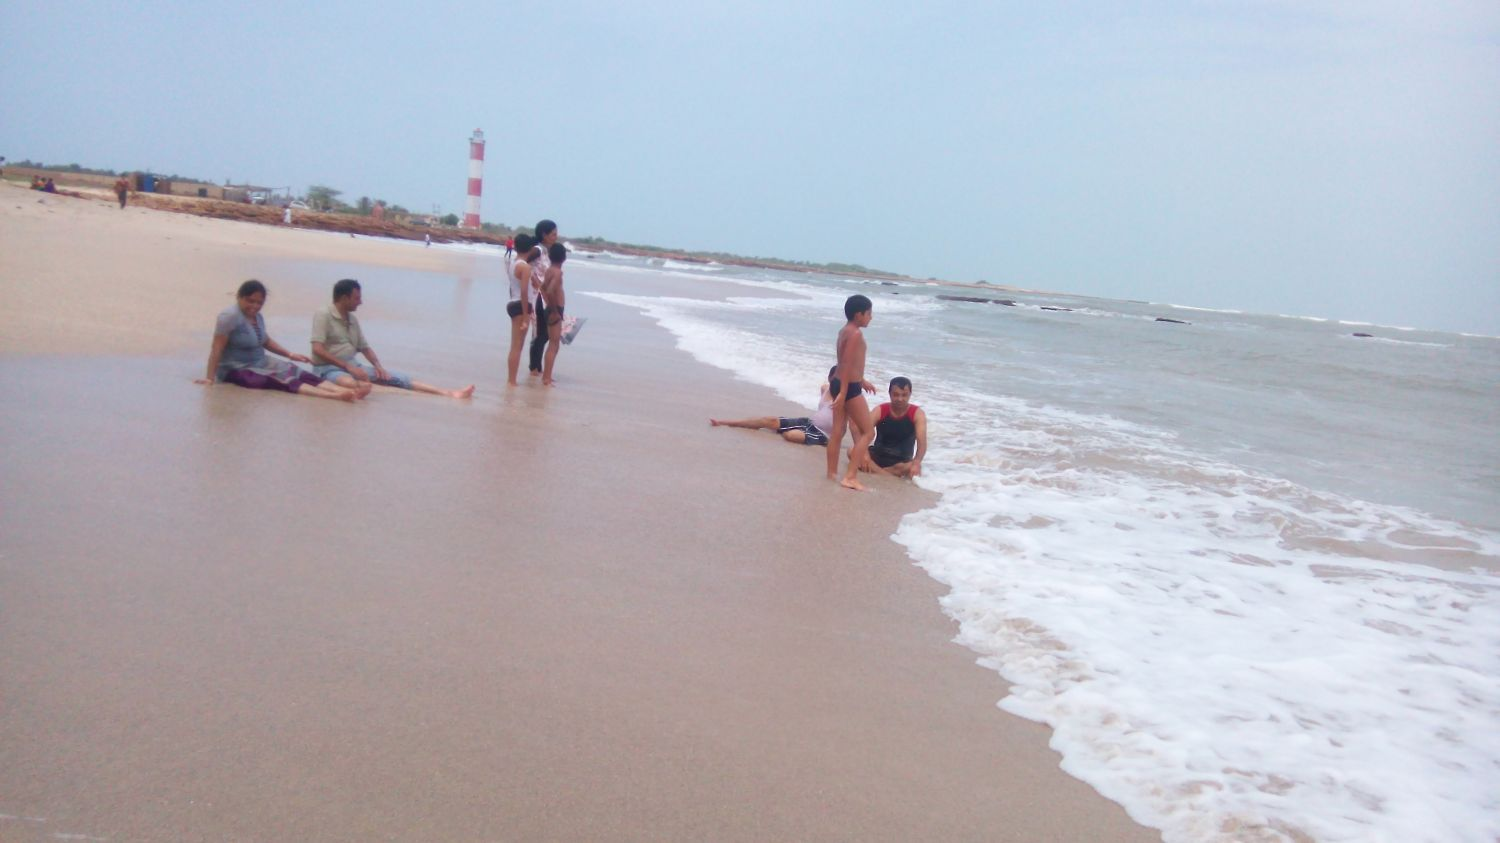 Place Of Tourist Interest in Jamnagar-Sivrajpur Beach